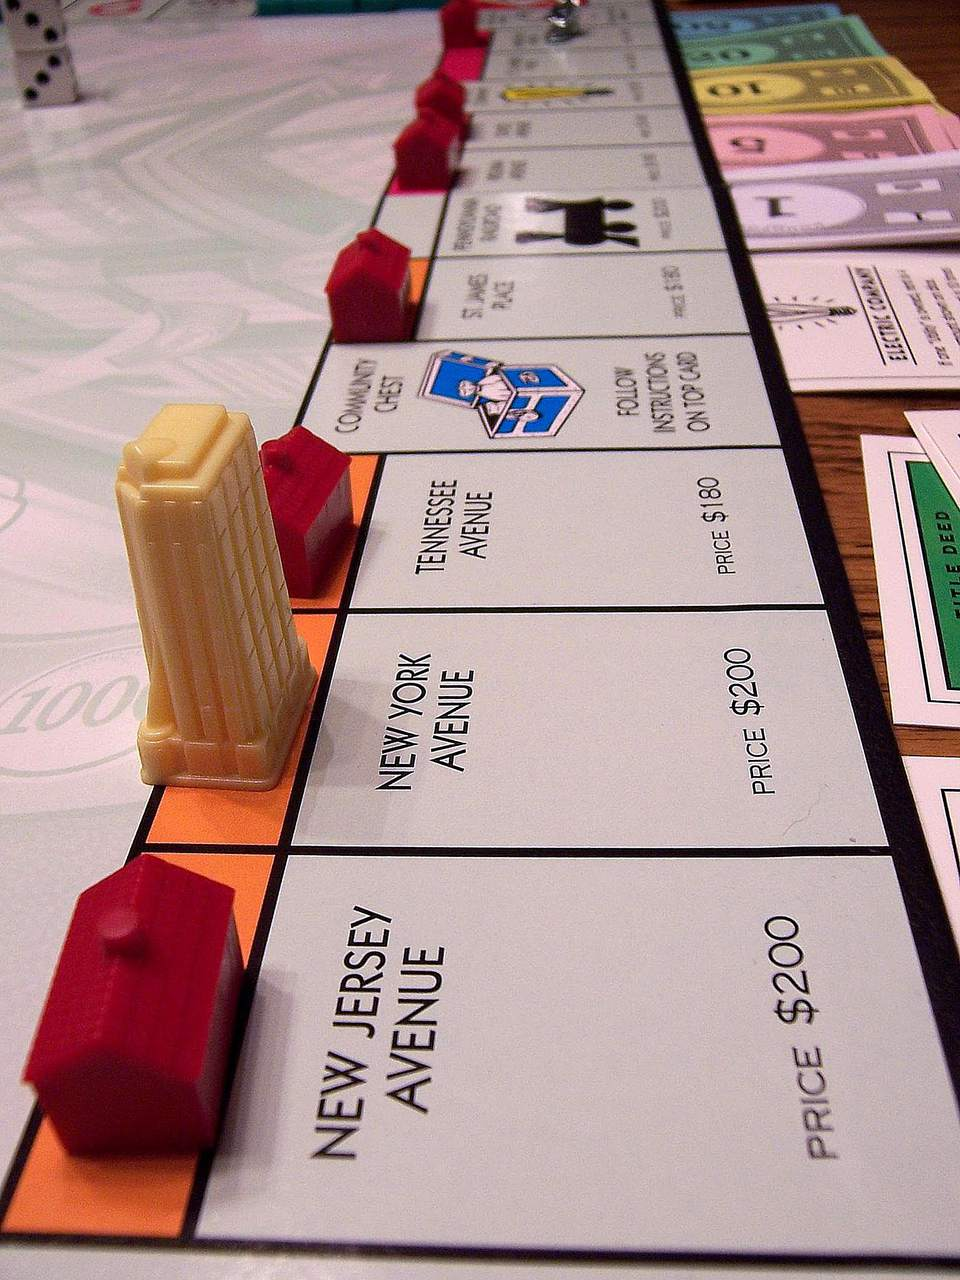 mega monopoly has skyscrapers